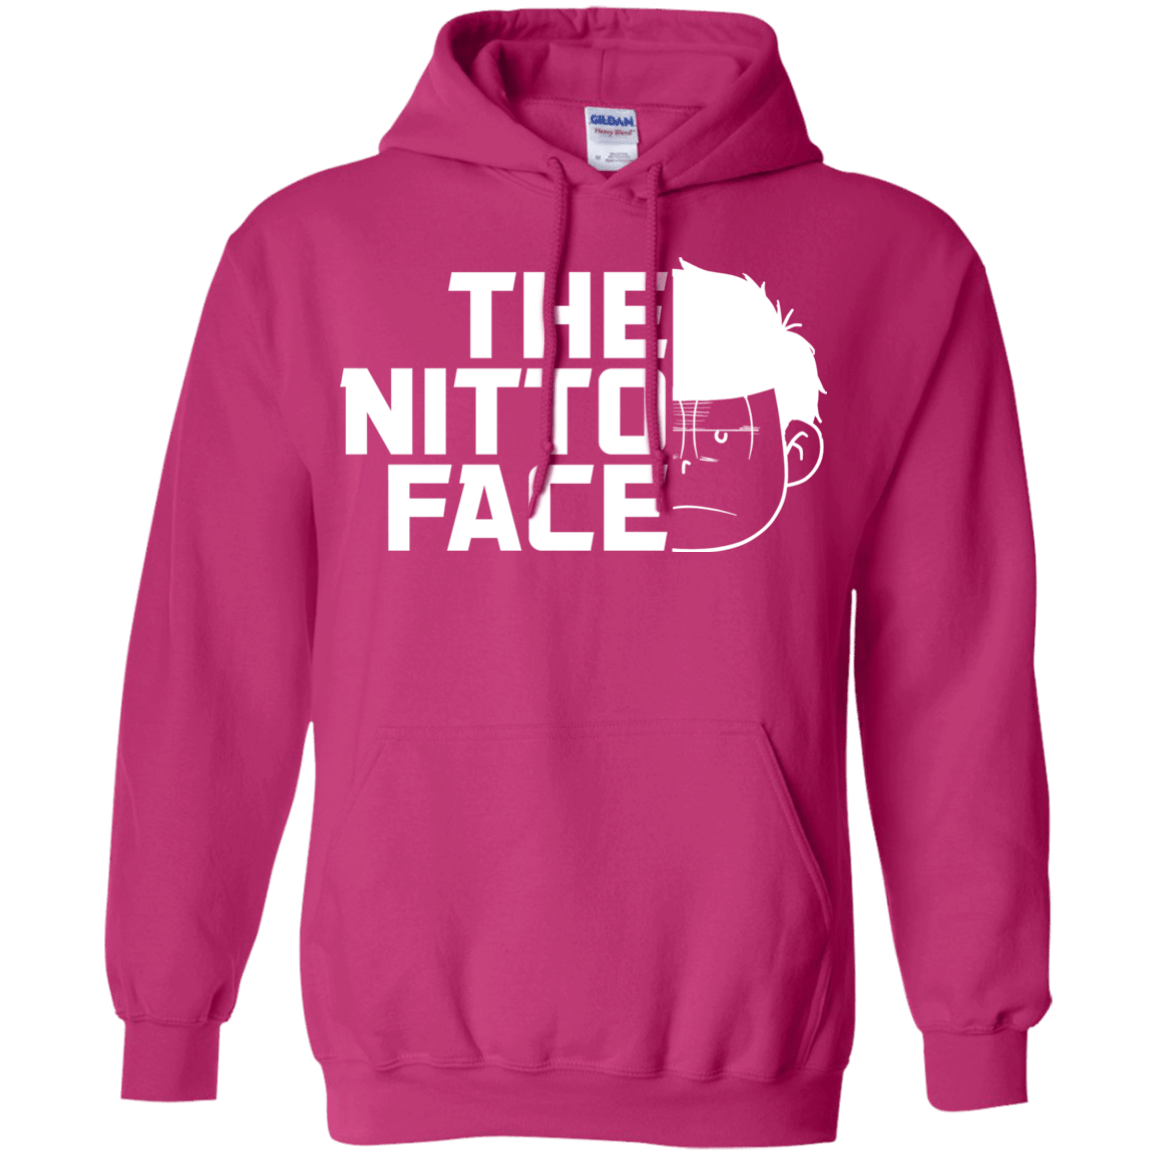 Sweatshirts Heliconia / S The Nitto Face Pullover Hoodie